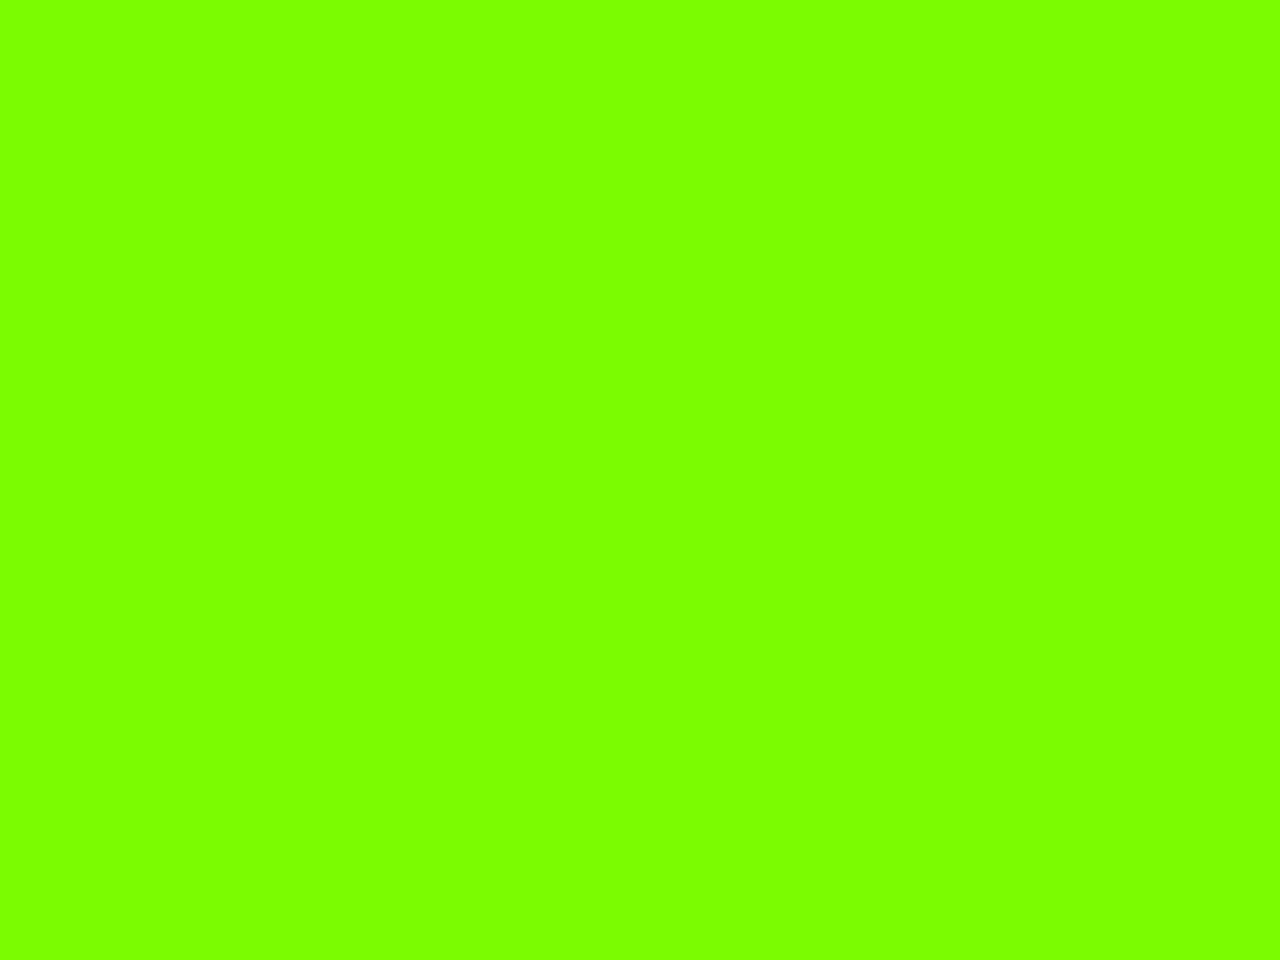 1280x960 Lawn Green Solid Color Background